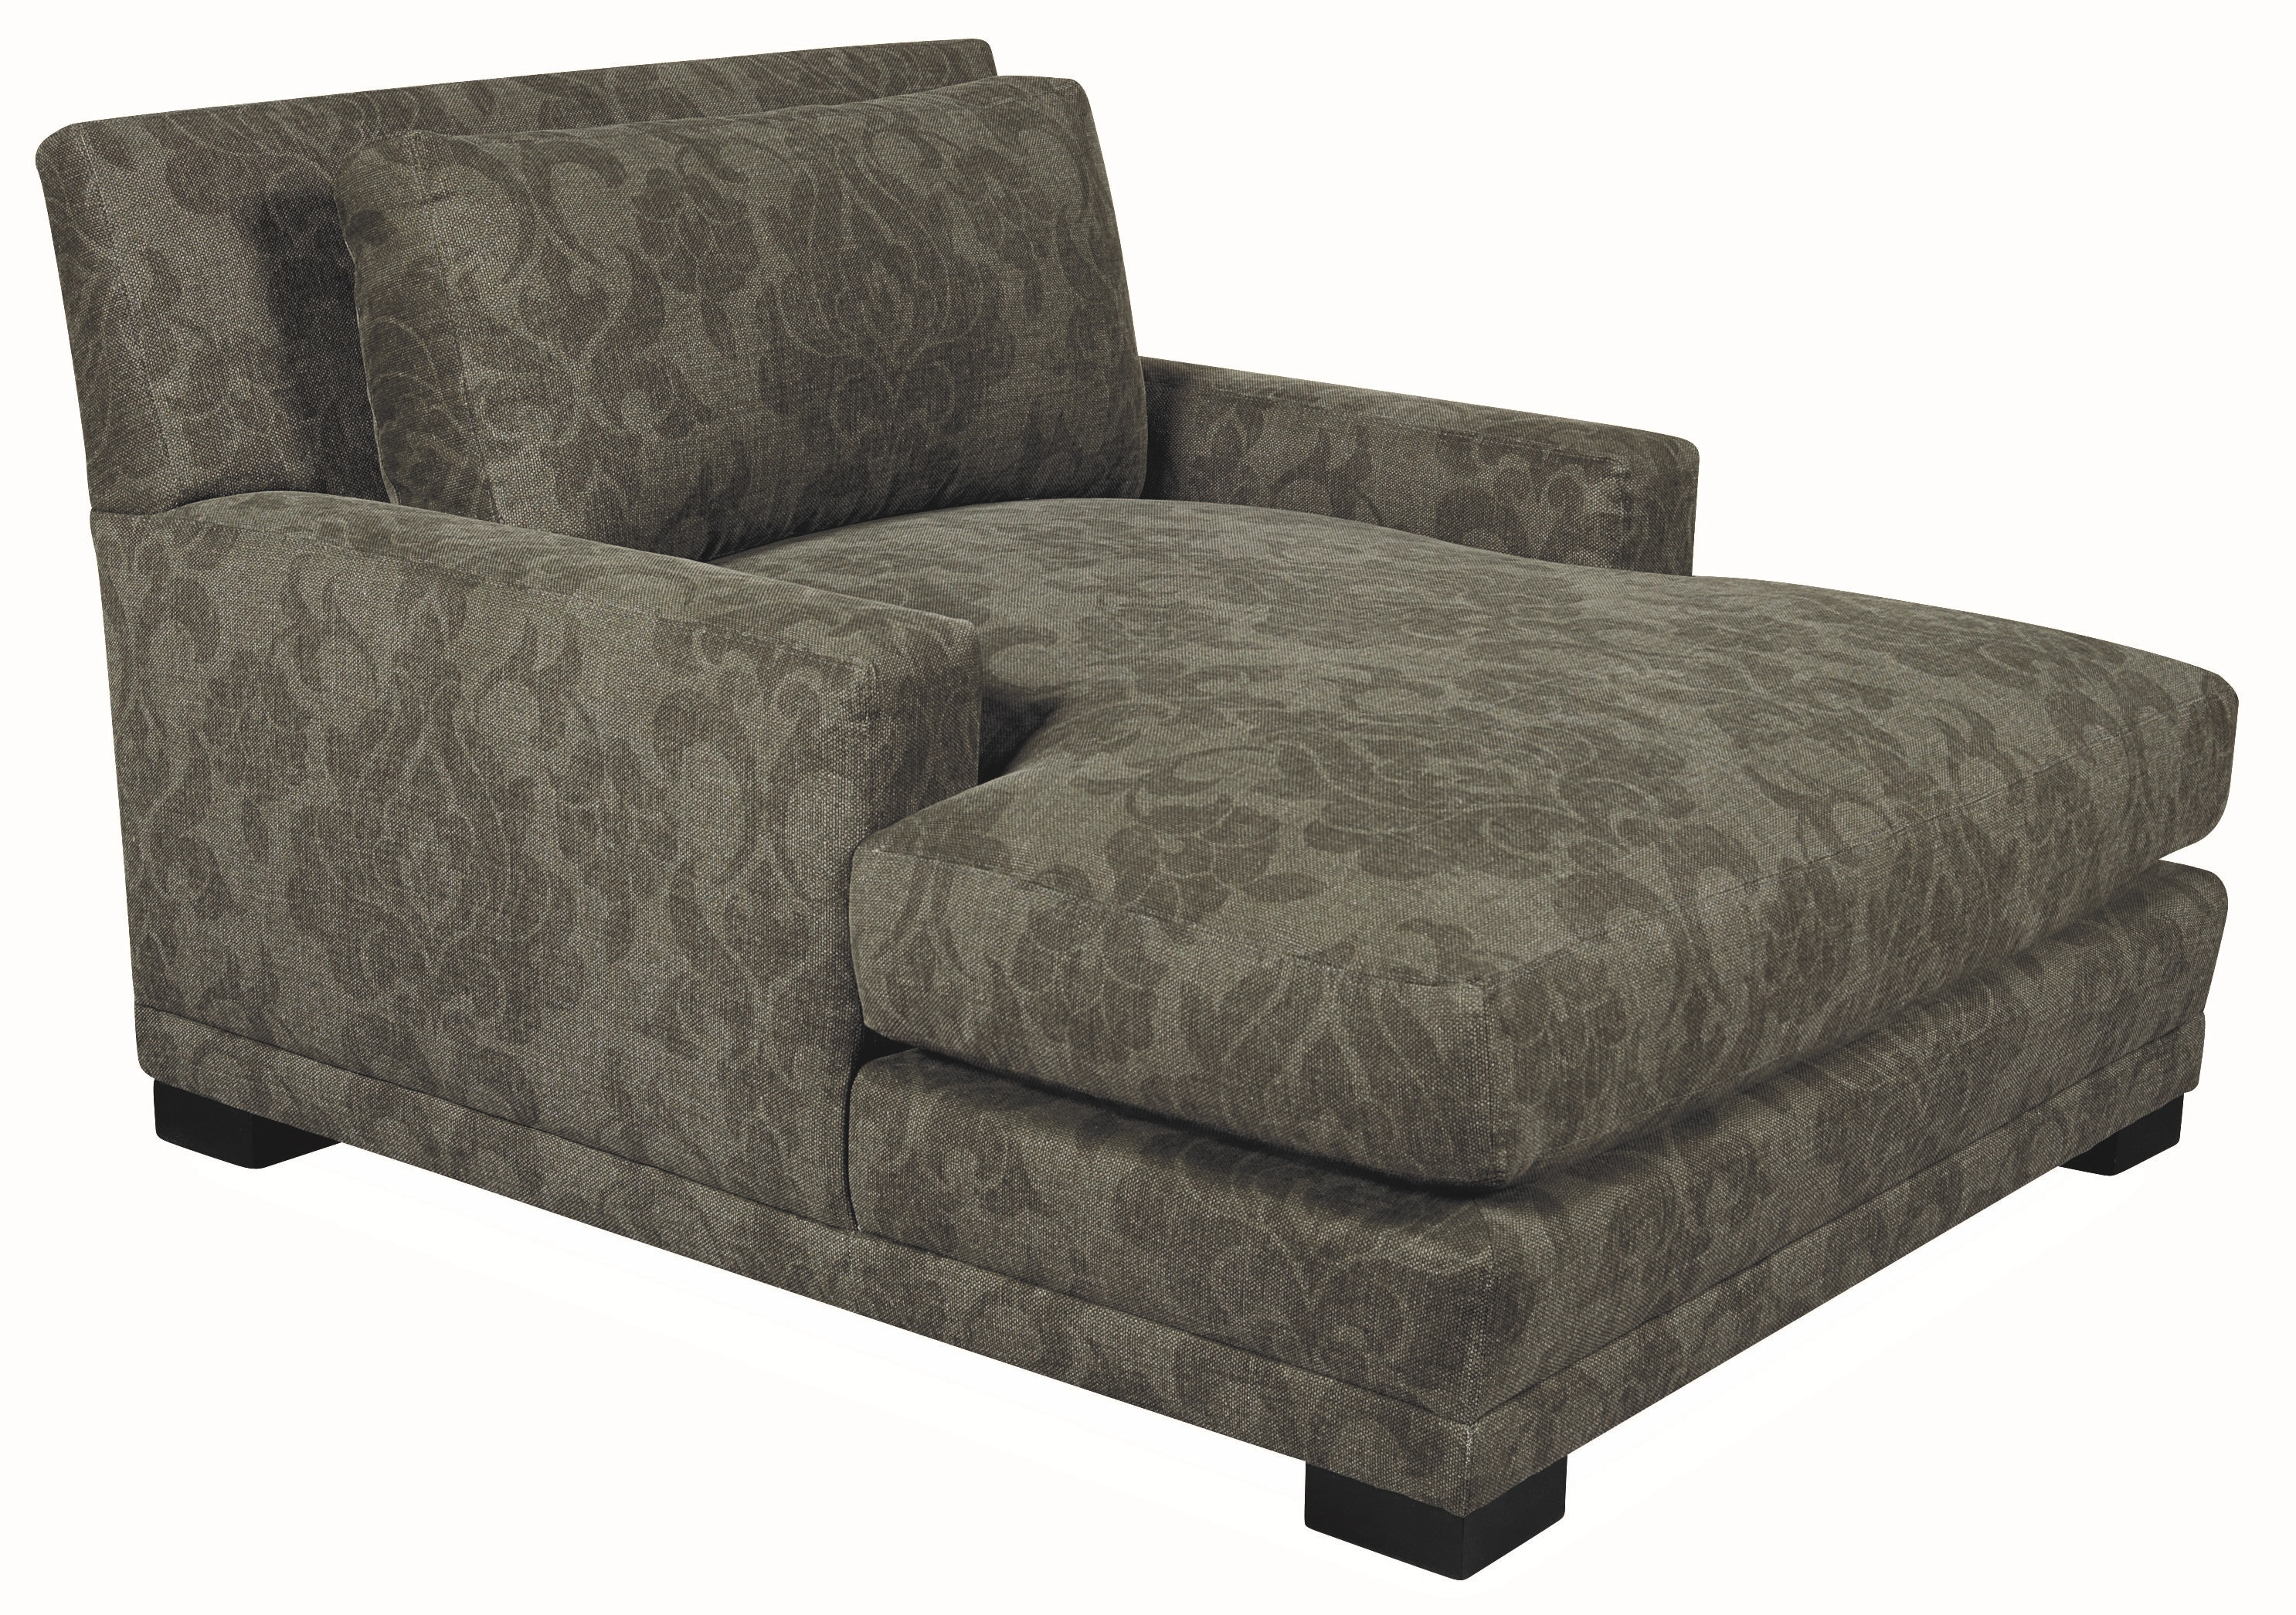 Lee Industries To Lounger 8801 21